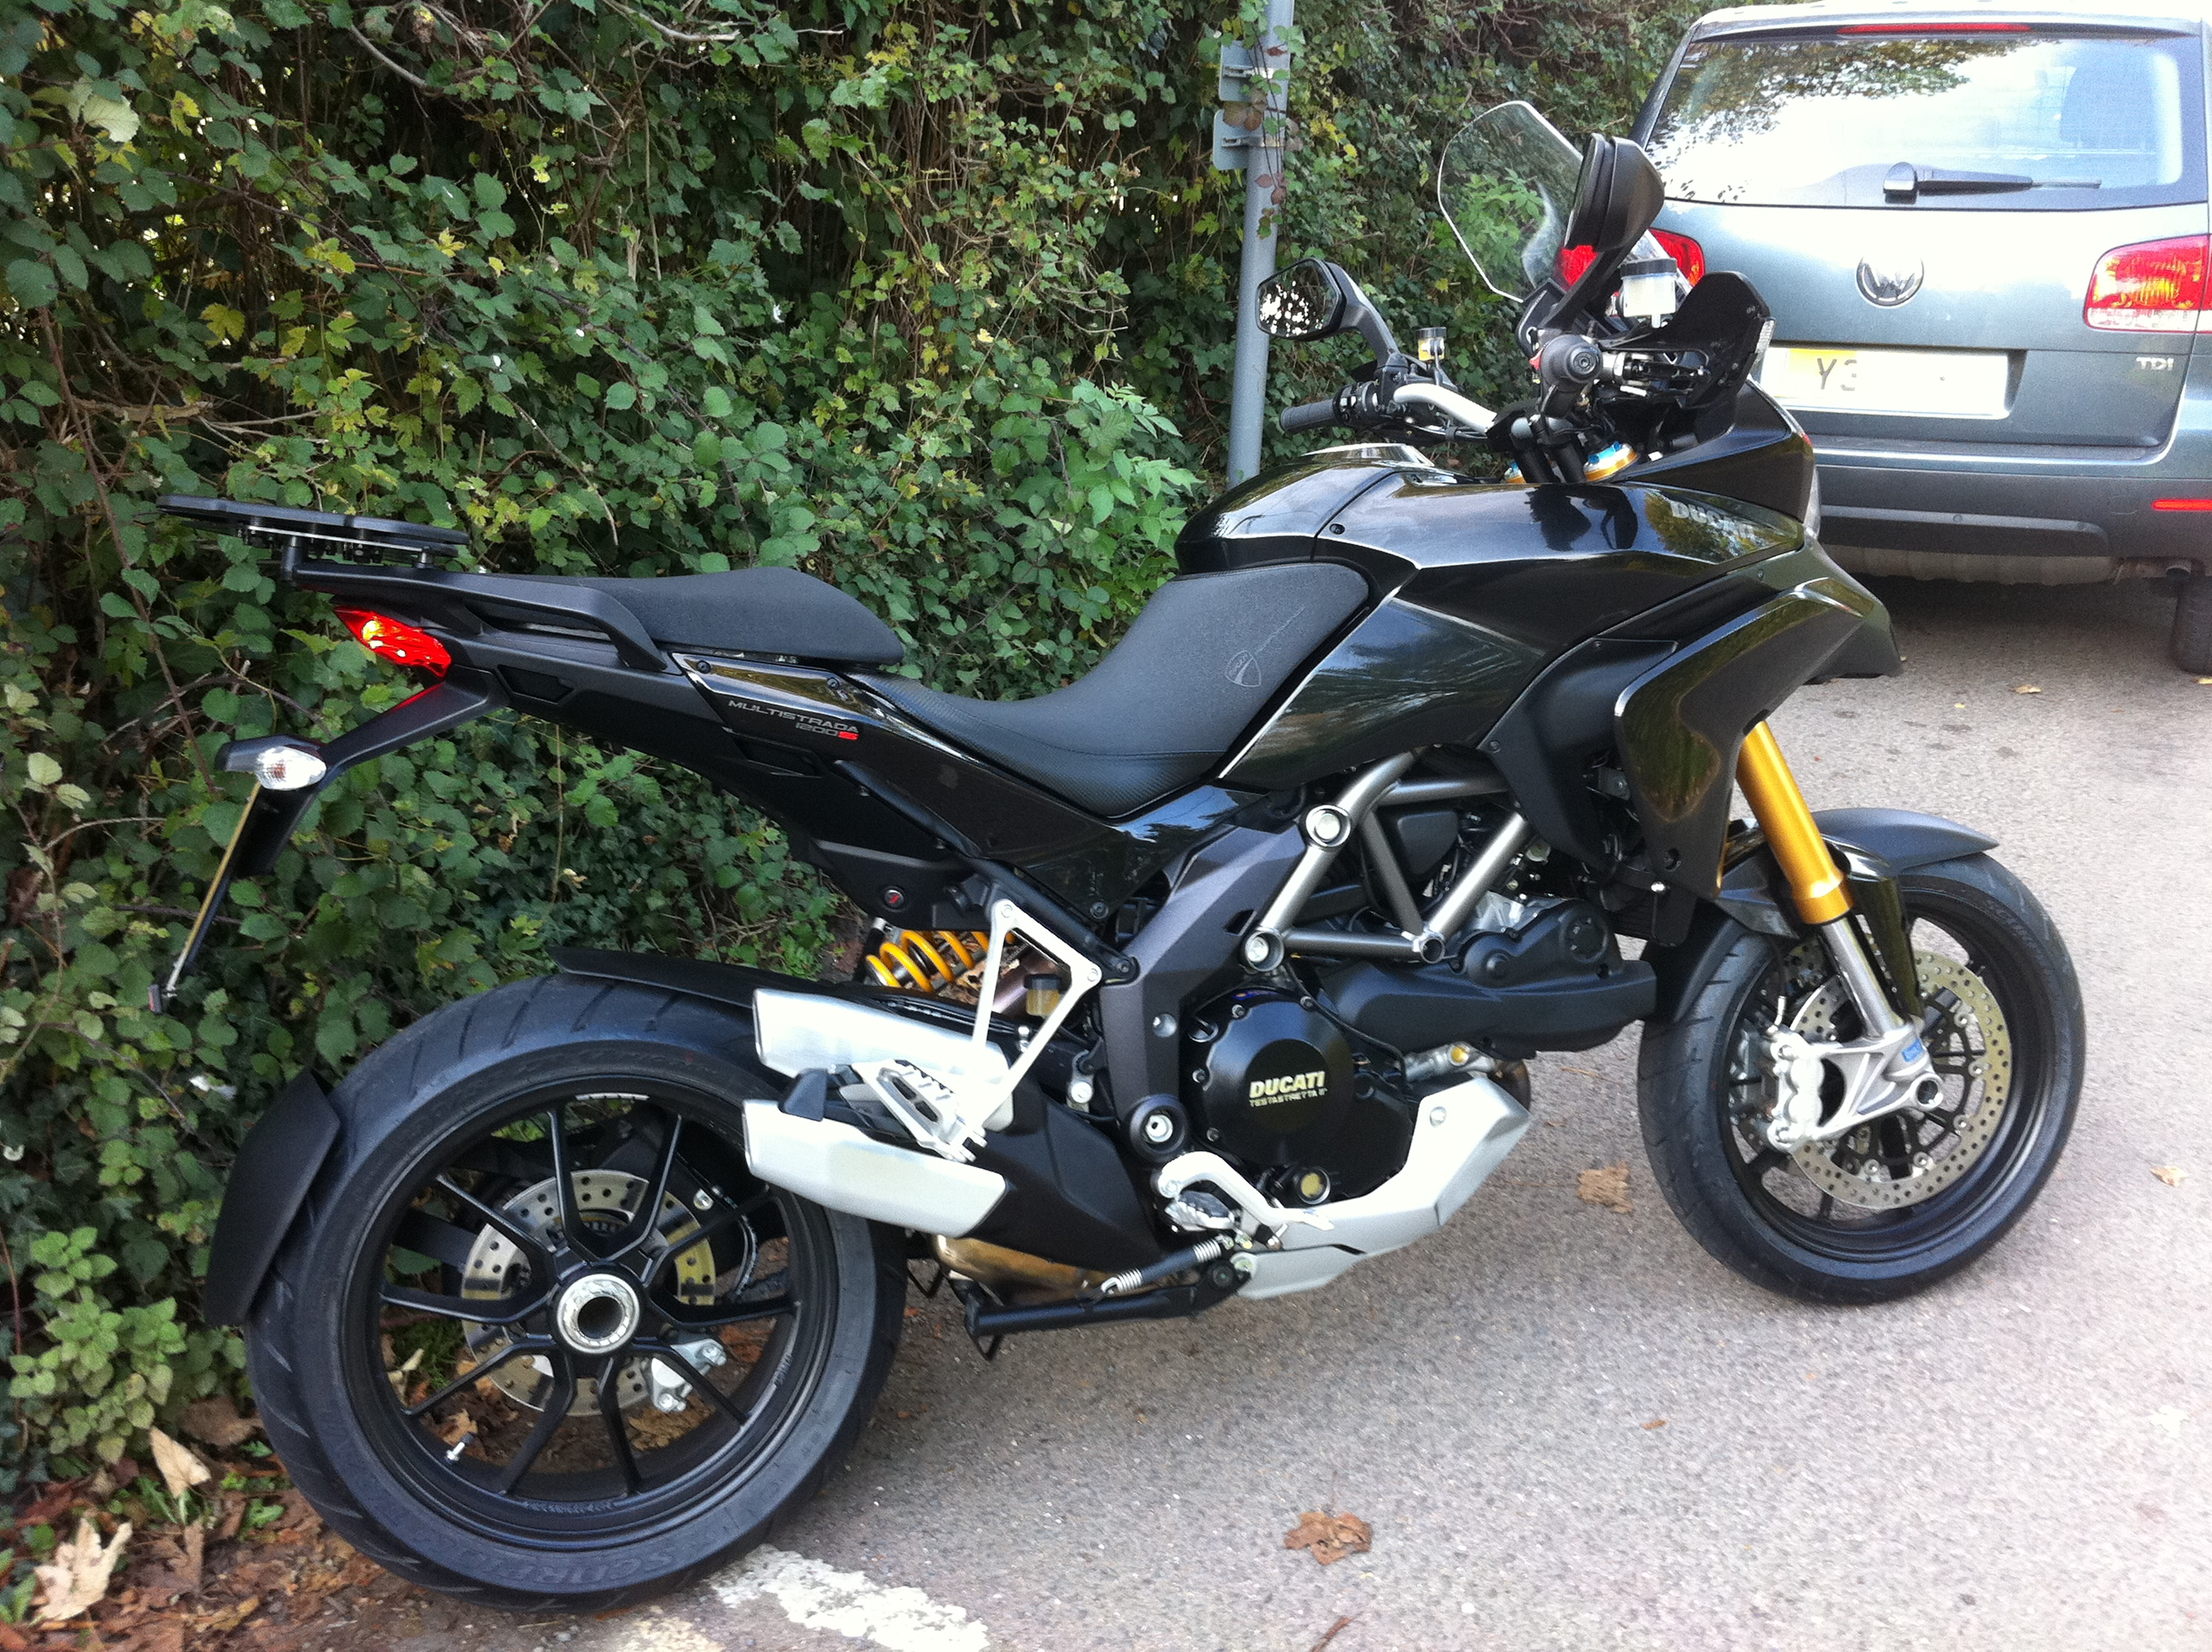 2011 ducati multistrada 1200s touring - a practical review, one